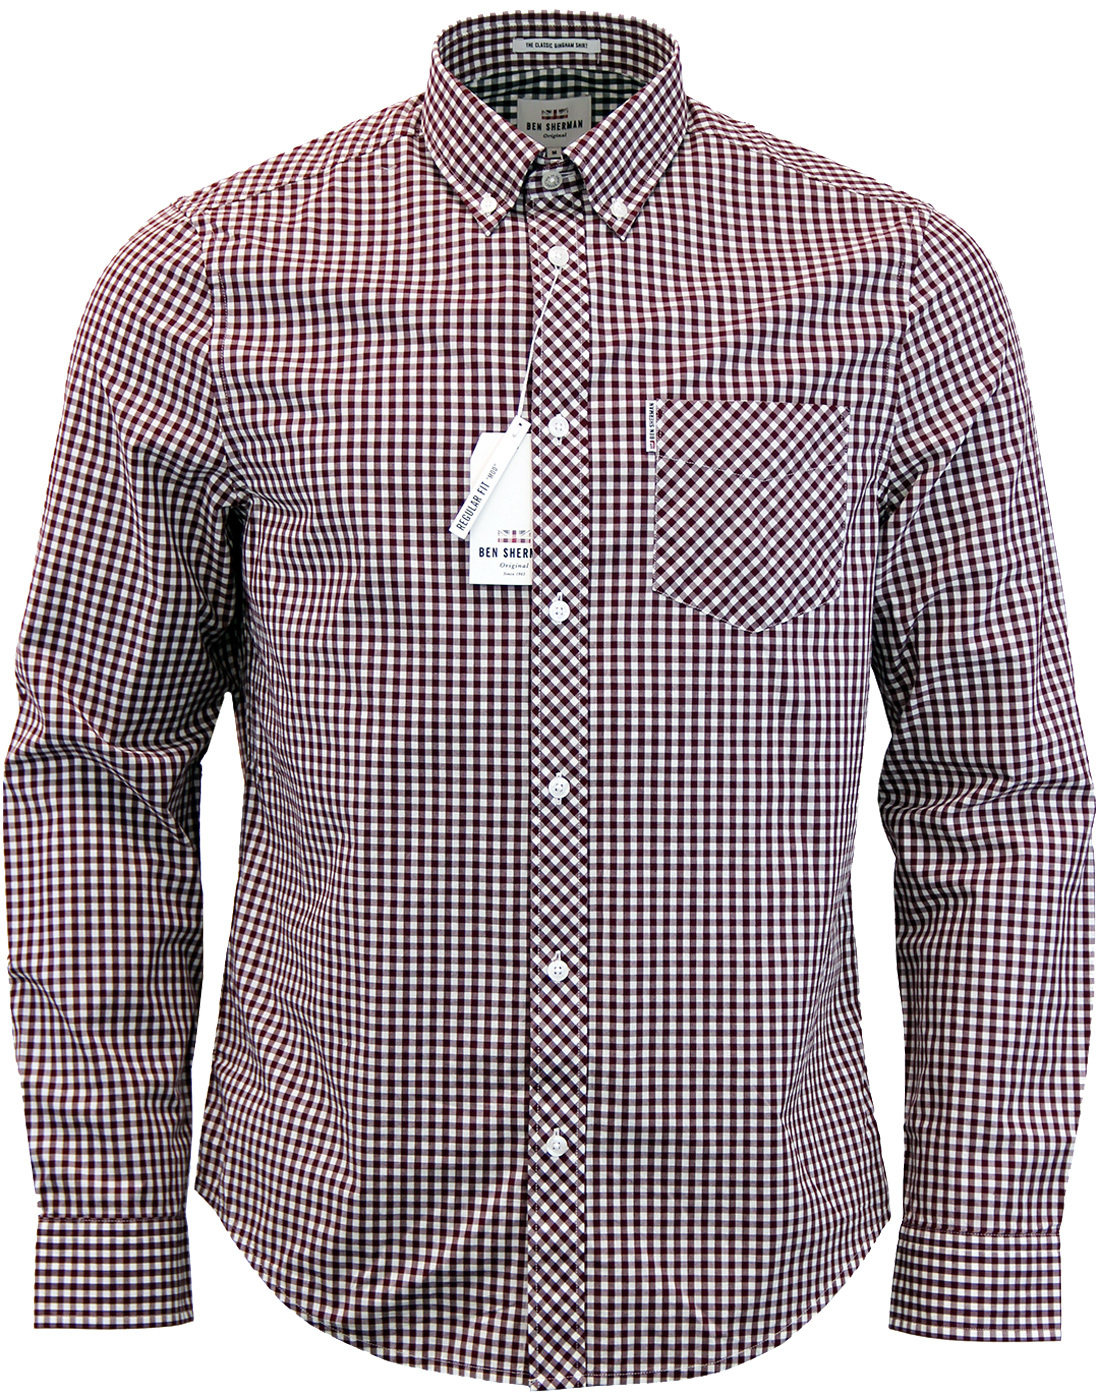 BEN SHERMAN Retro Mod 60s Gingham Shirt - Oxblood